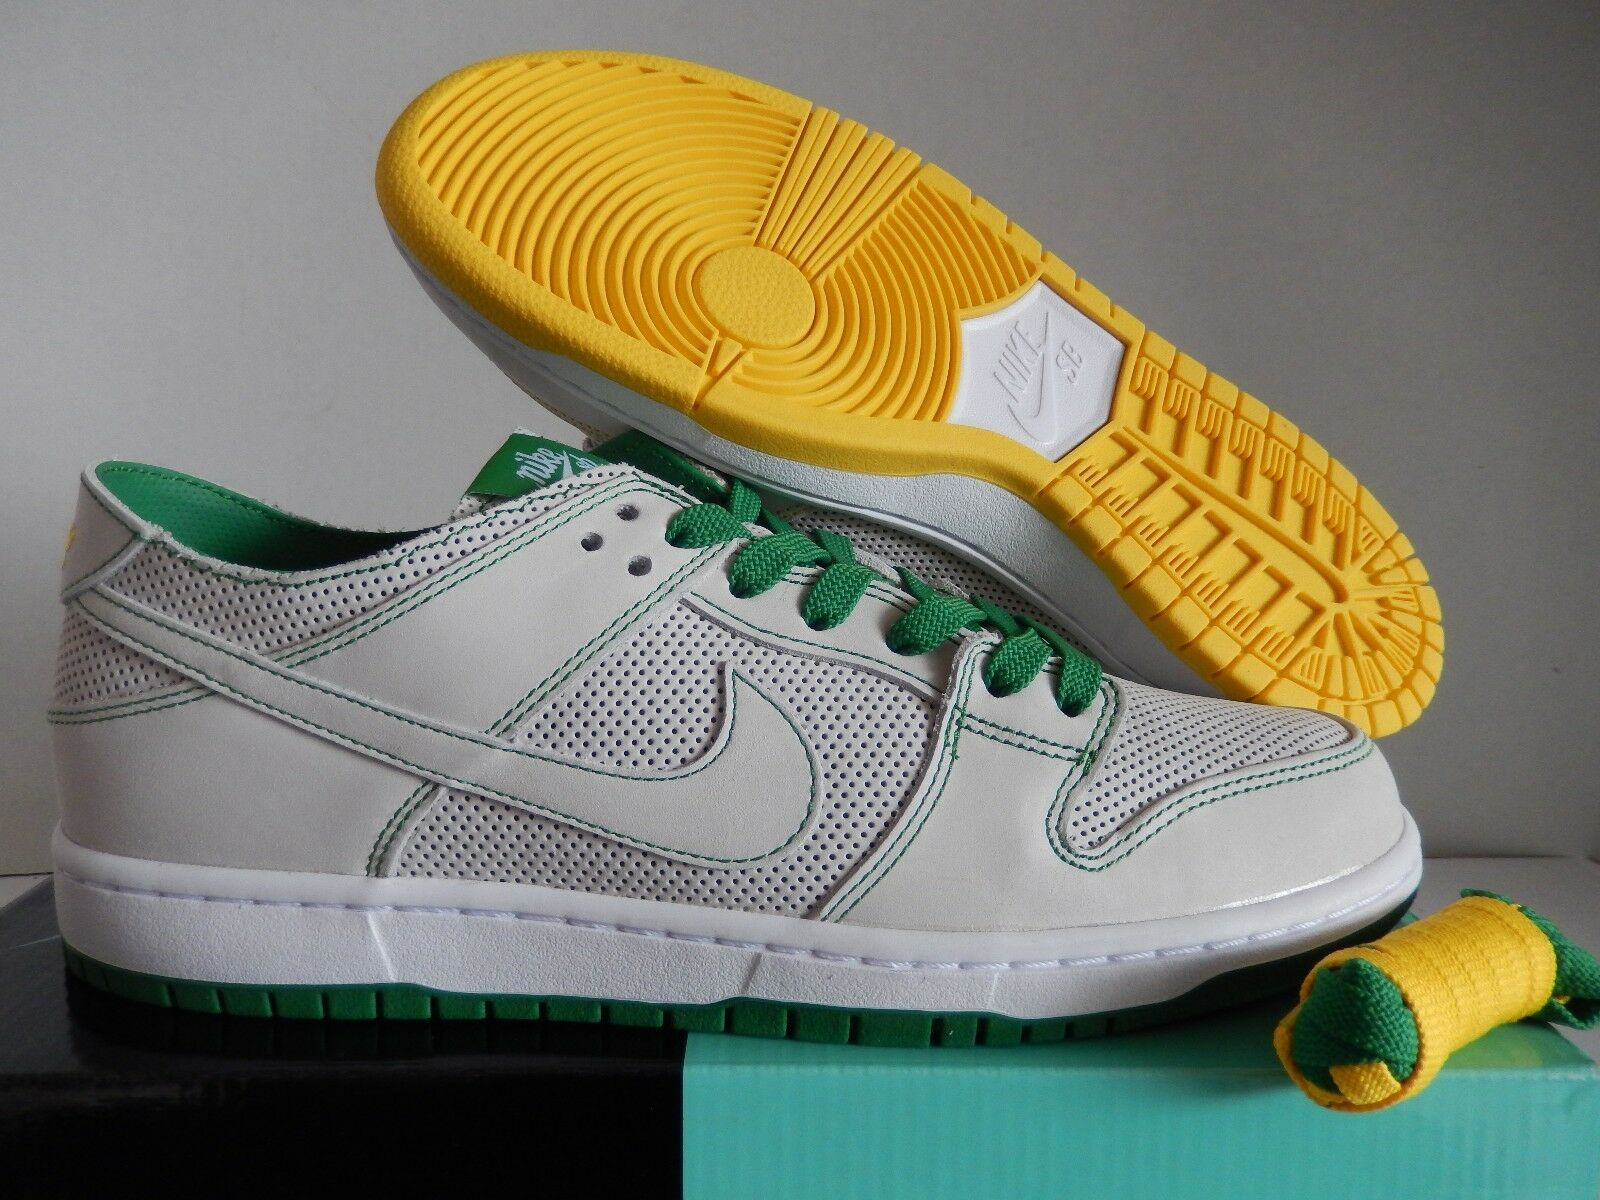 NIKE SB ZOOM DUNK LOW PRO DECON QS  ISHOD WAIR  WHITE-YELLOW SZ 10 [AR1399-113]